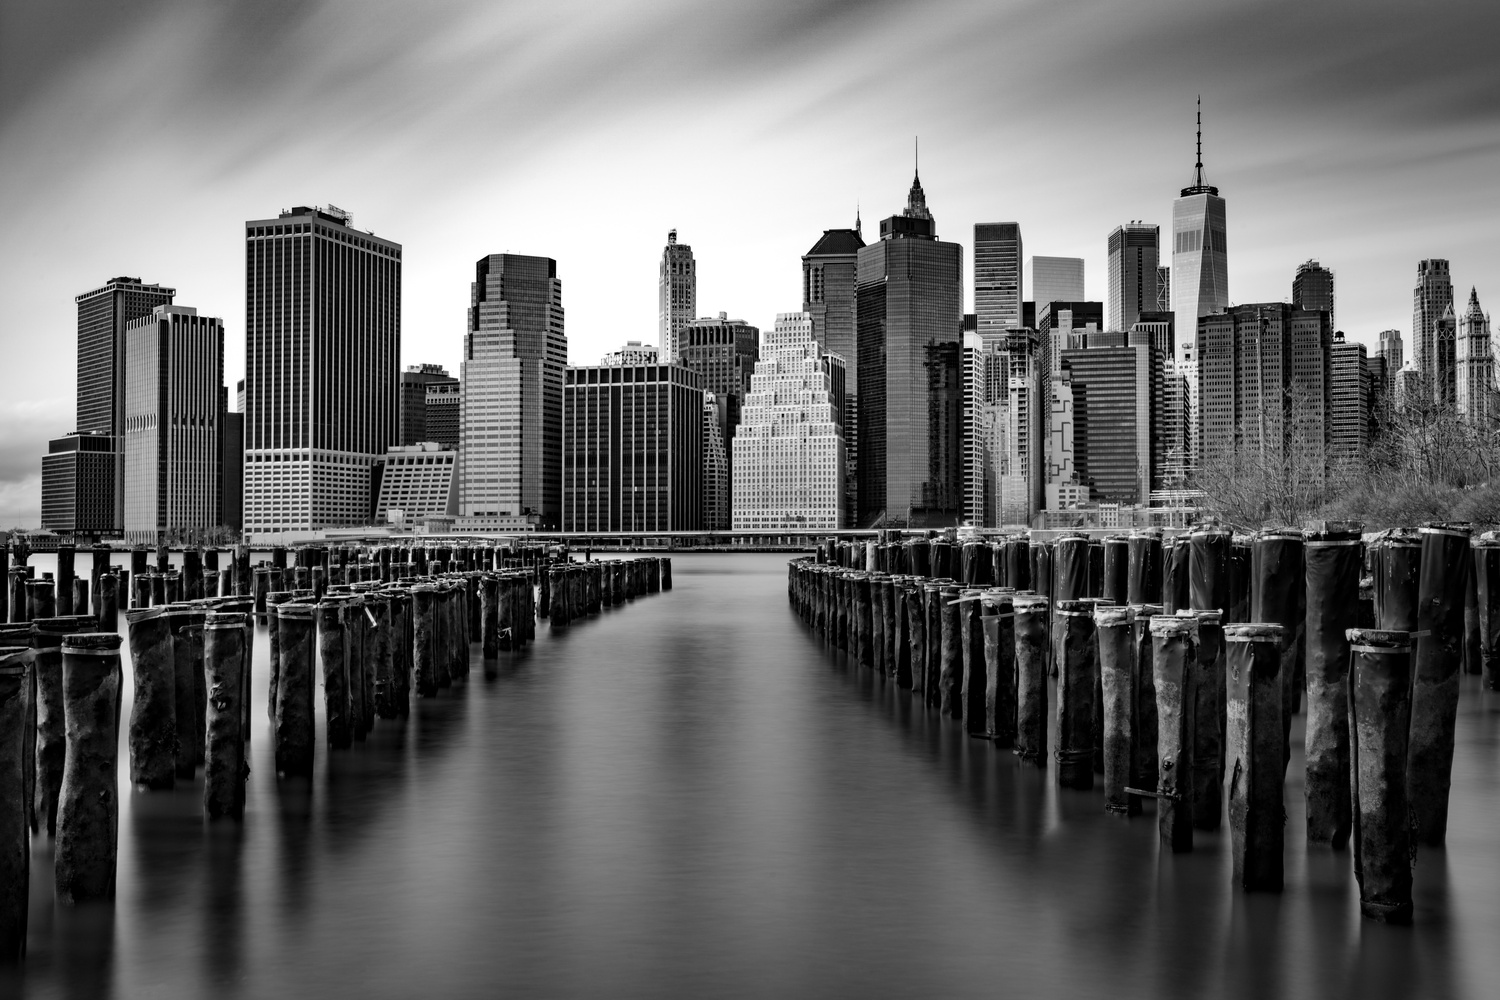 East River by Michael Giacobbe